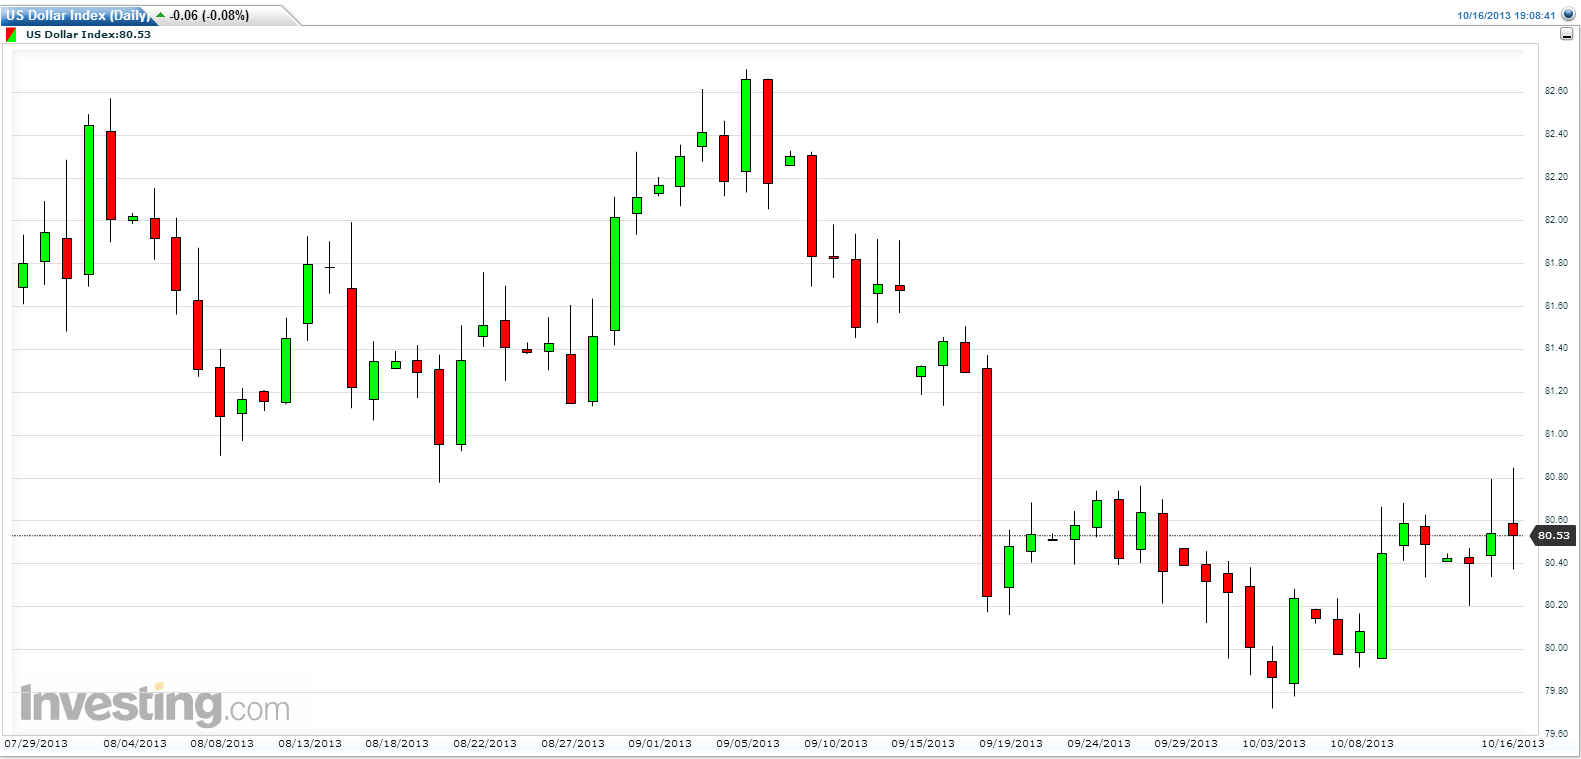 USD DXY dollar index - daily chart